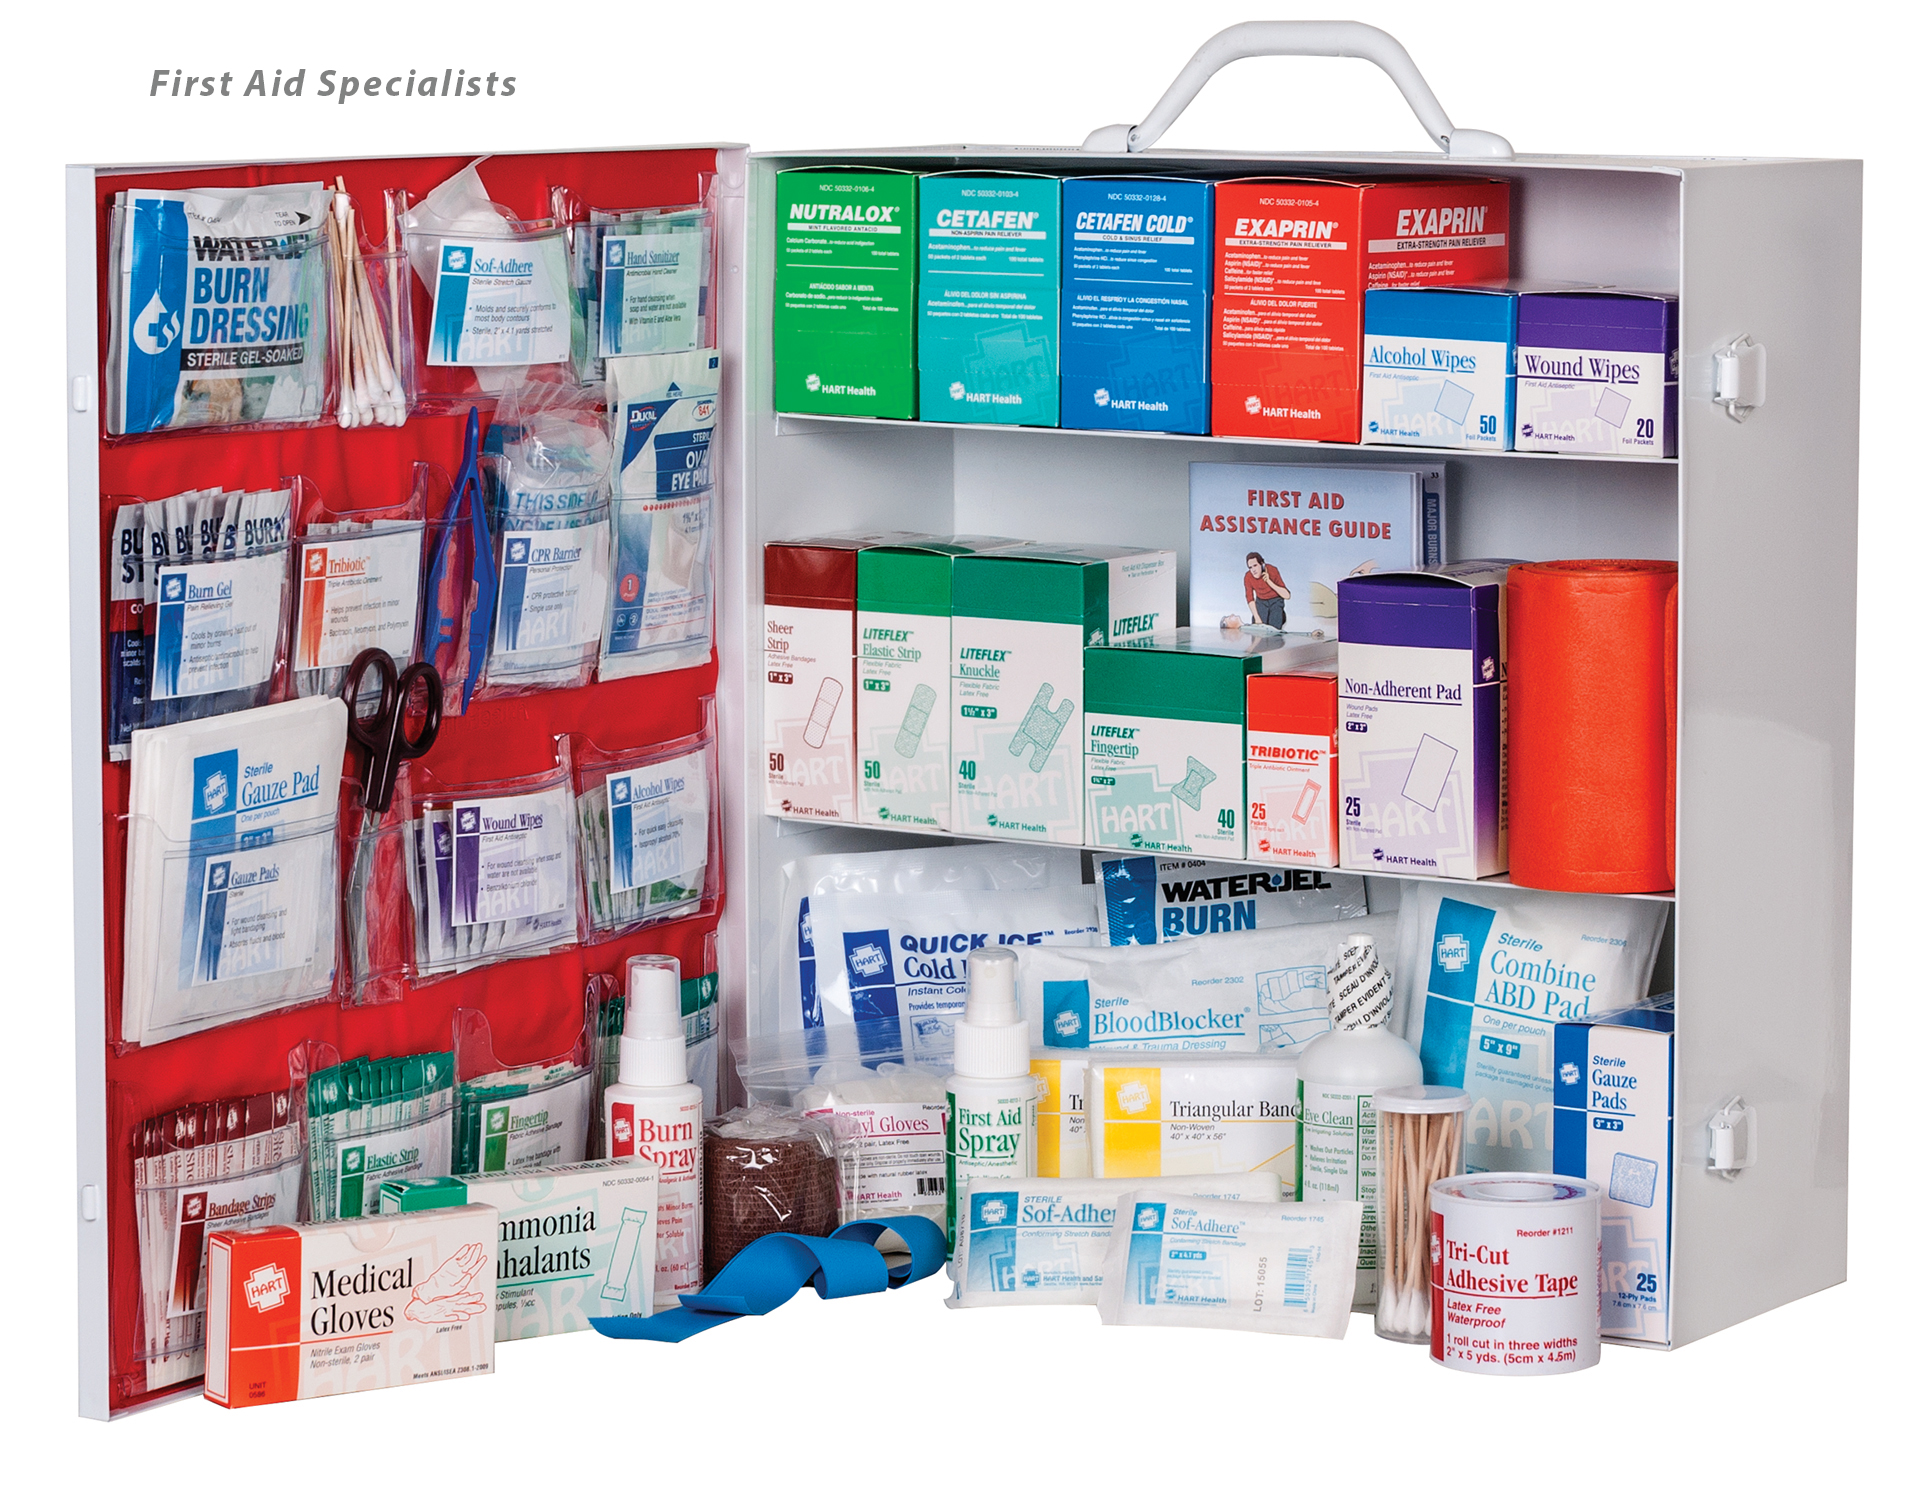 San francisco ca first aid kits and supplies normed san francisco ca first aid kits and supplies publicscrutiny Choice Image